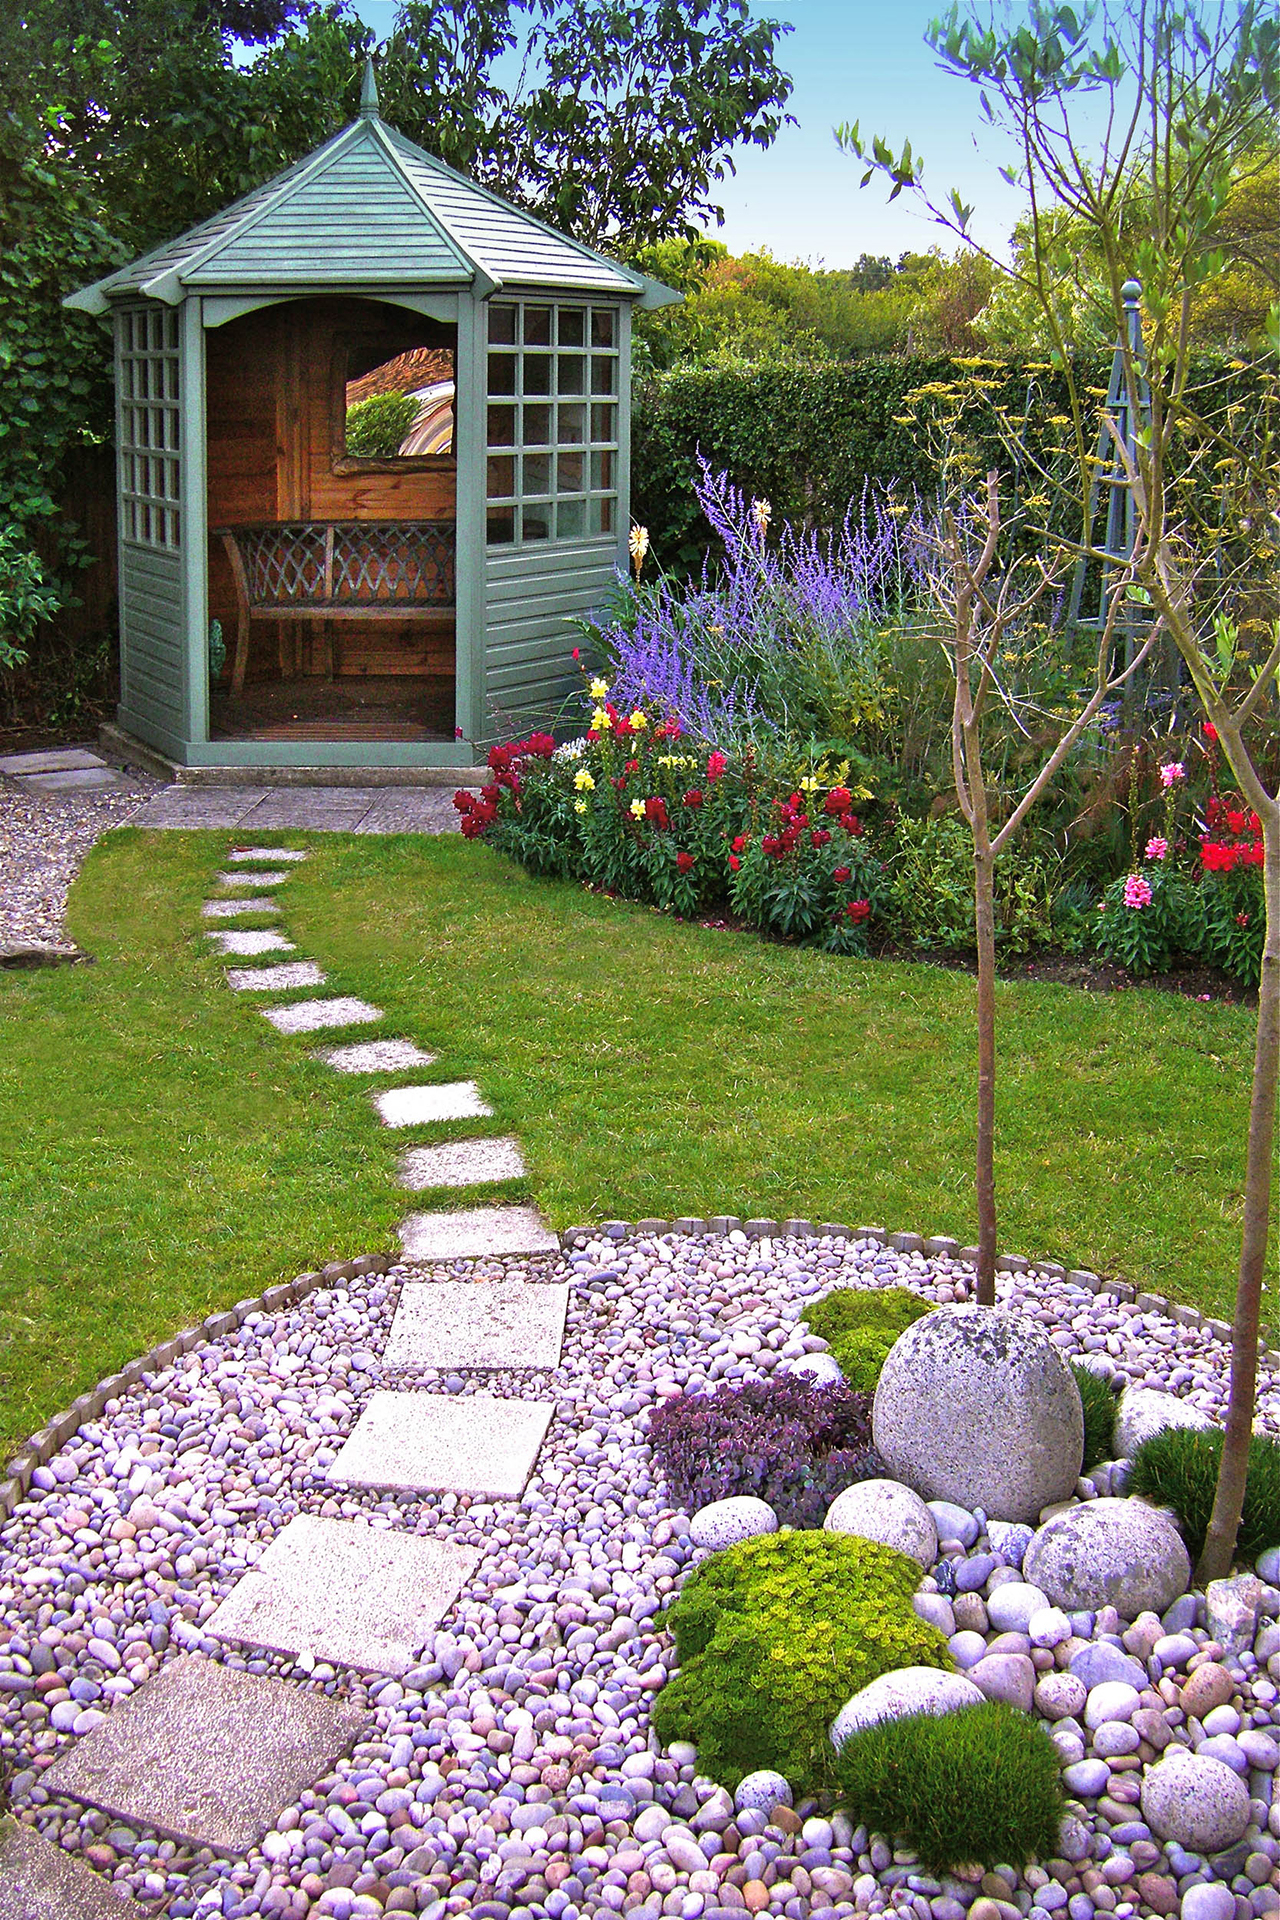 50 Best Backyard Landscaping Ideas And Designs In 2019 pertaining to Landscaping Plans For Backyard